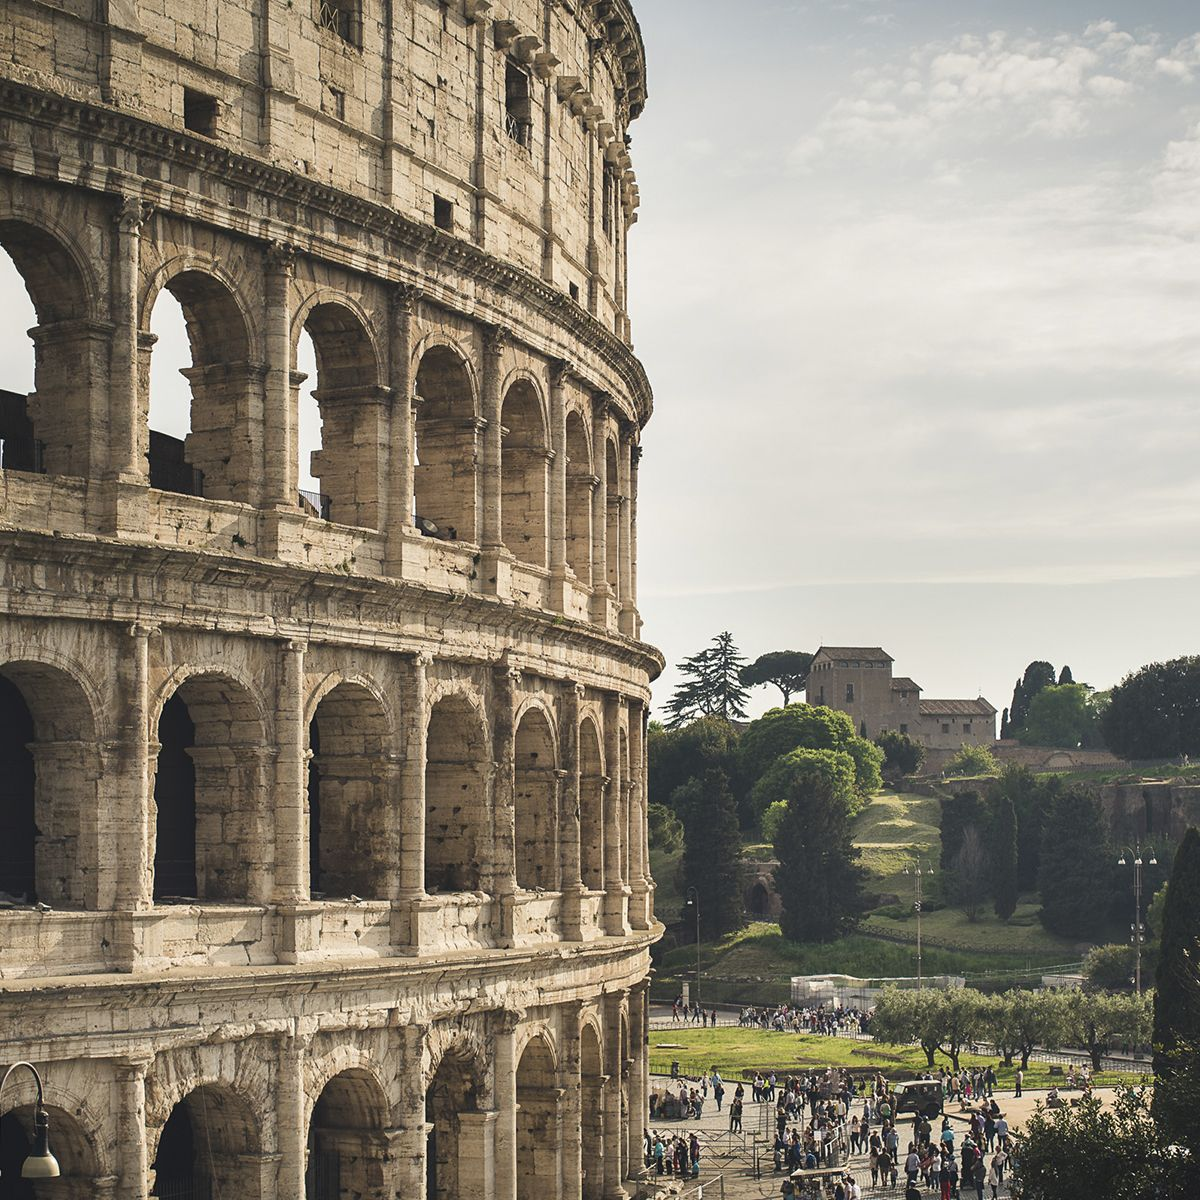 Things To Do In Rome With Kids Kid Children And Lifestyle - 8 fun activities for kids in rome